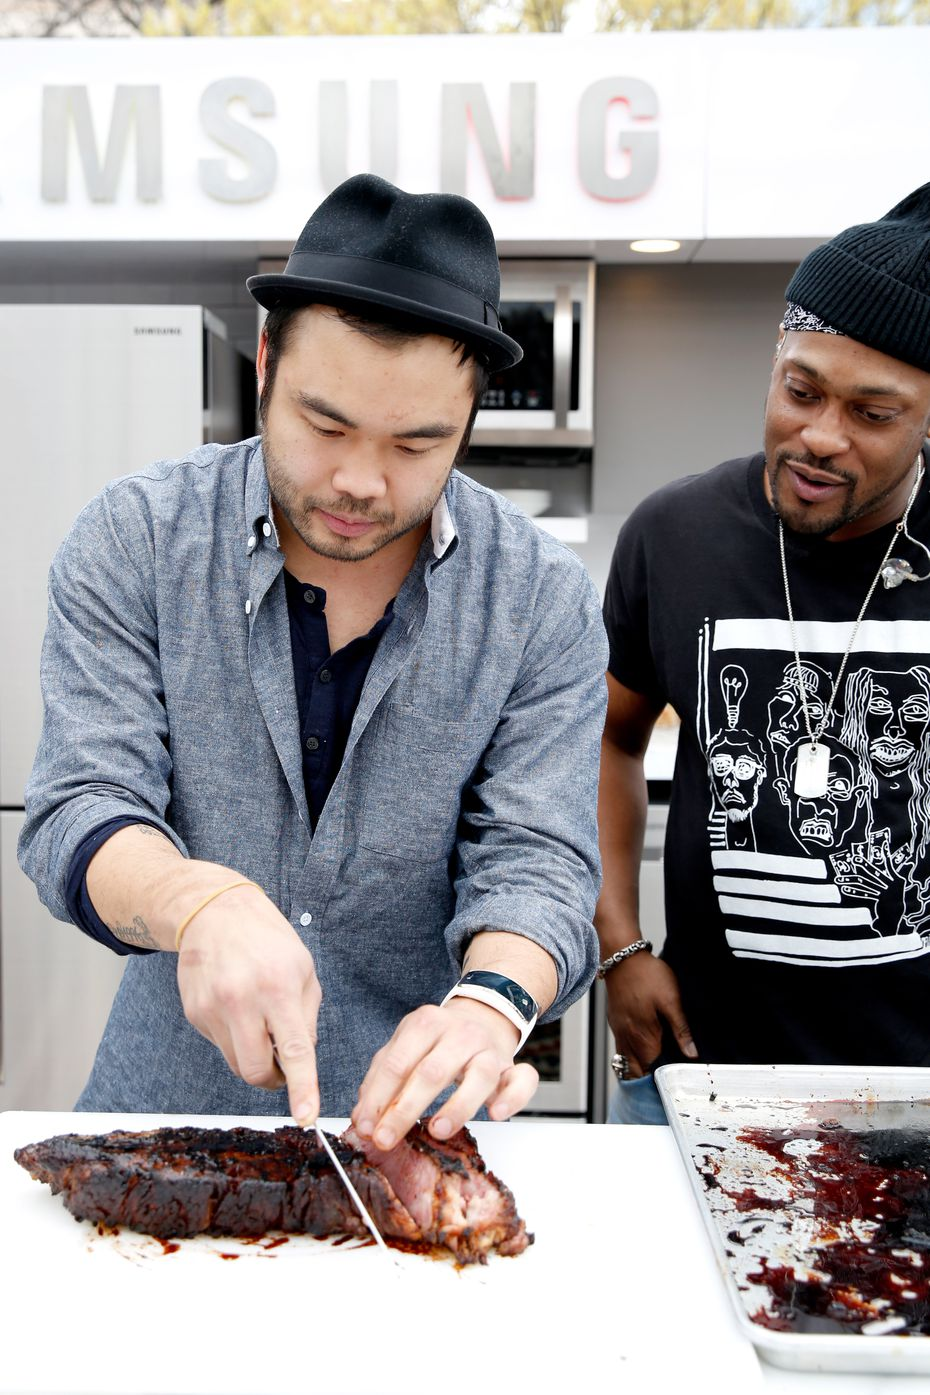 Chef Paul Qui (left) slices meat while singer/songwriter D'Angelo looks on at SXSW 2015 in Austin, Texas